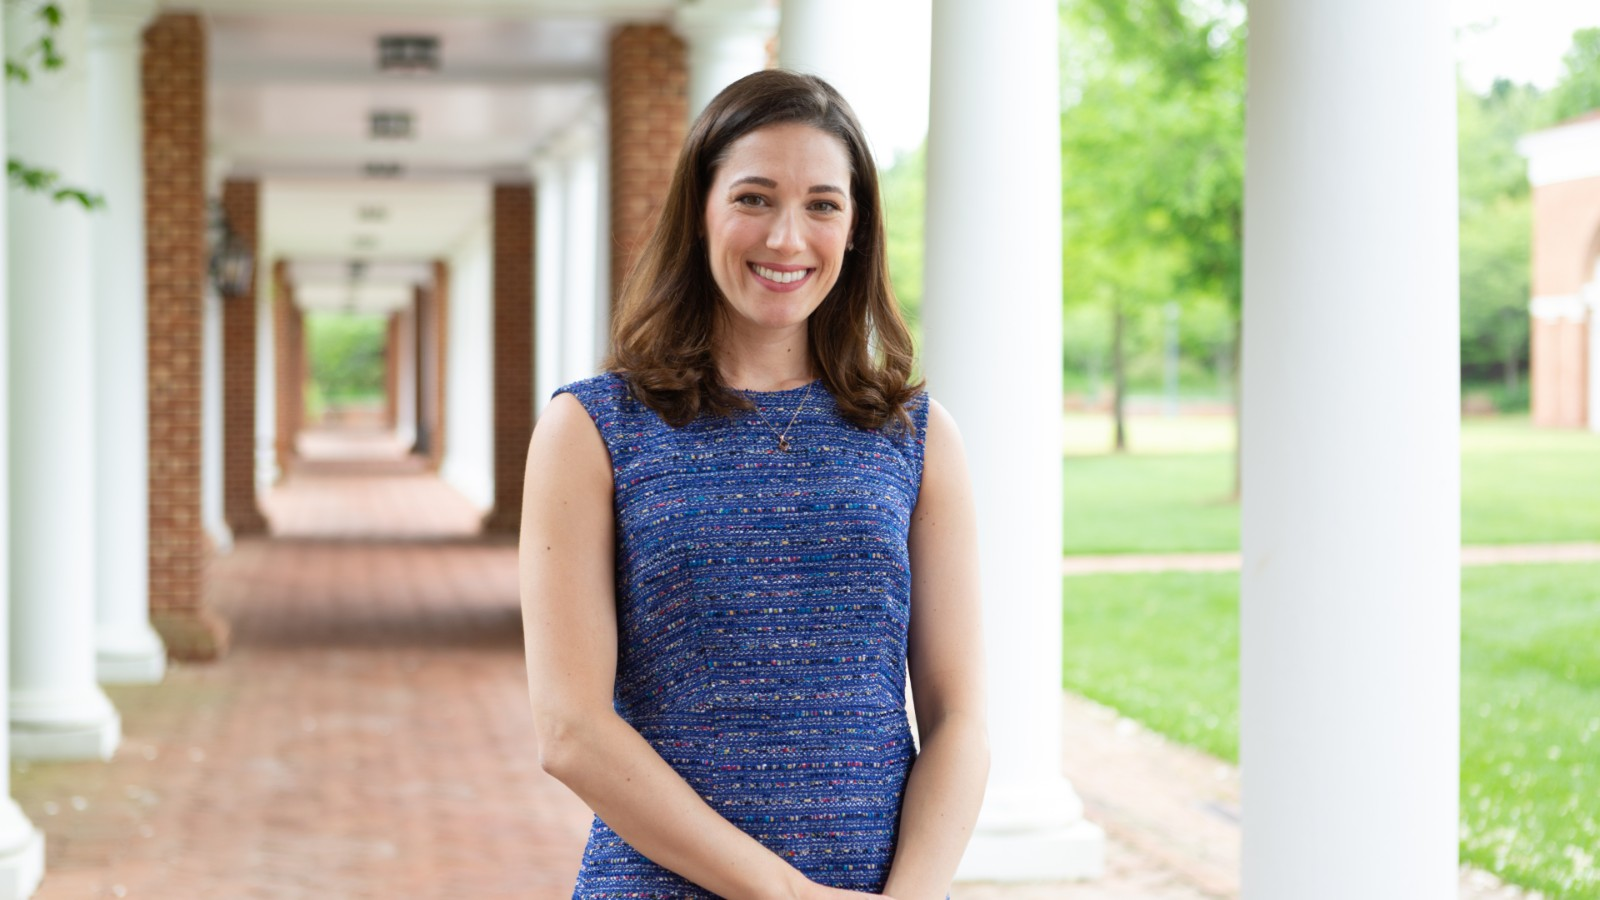 sofia-scott-class-of-2019-takes-darden-fund-management-experience-to-wall-street